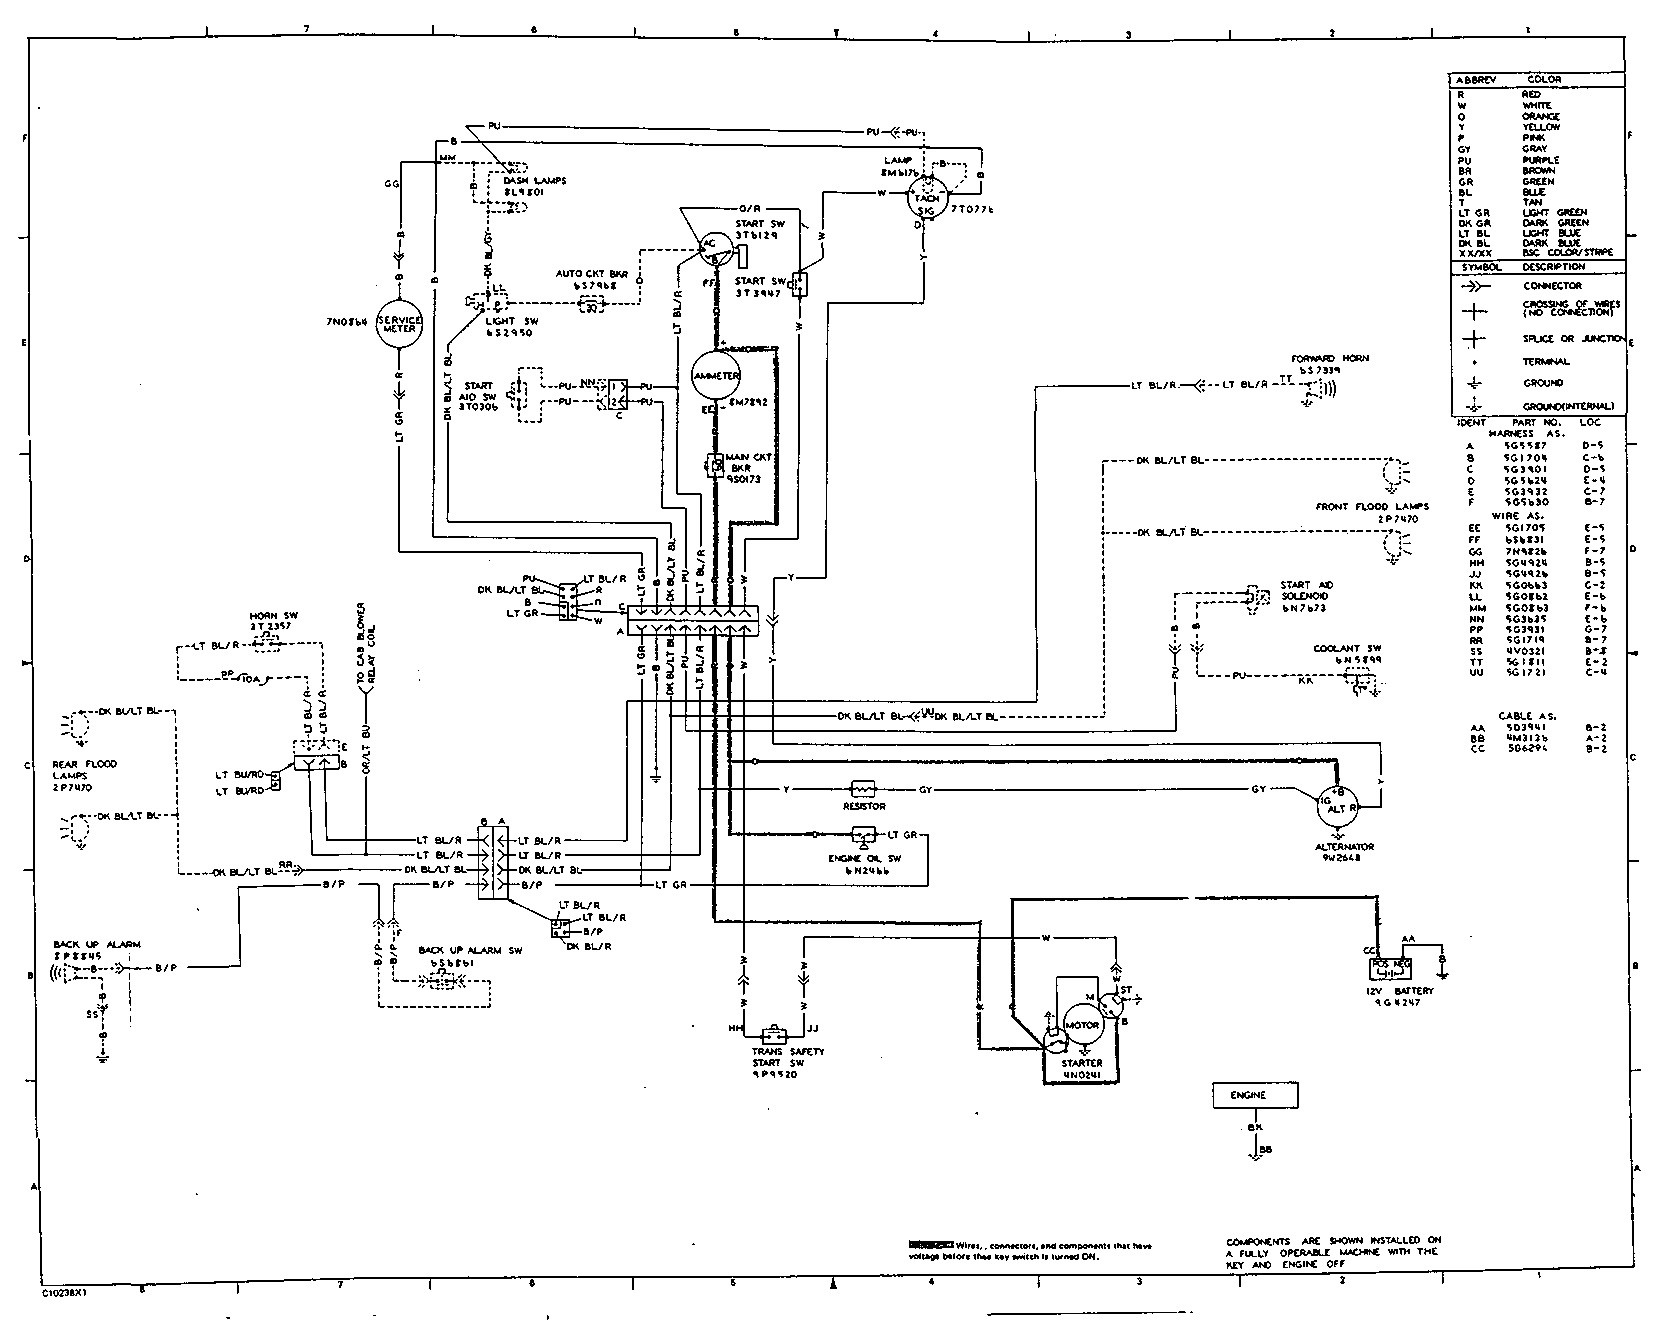 Cat C15 Engine Diagram Caterpillar Diesel Generator Manual